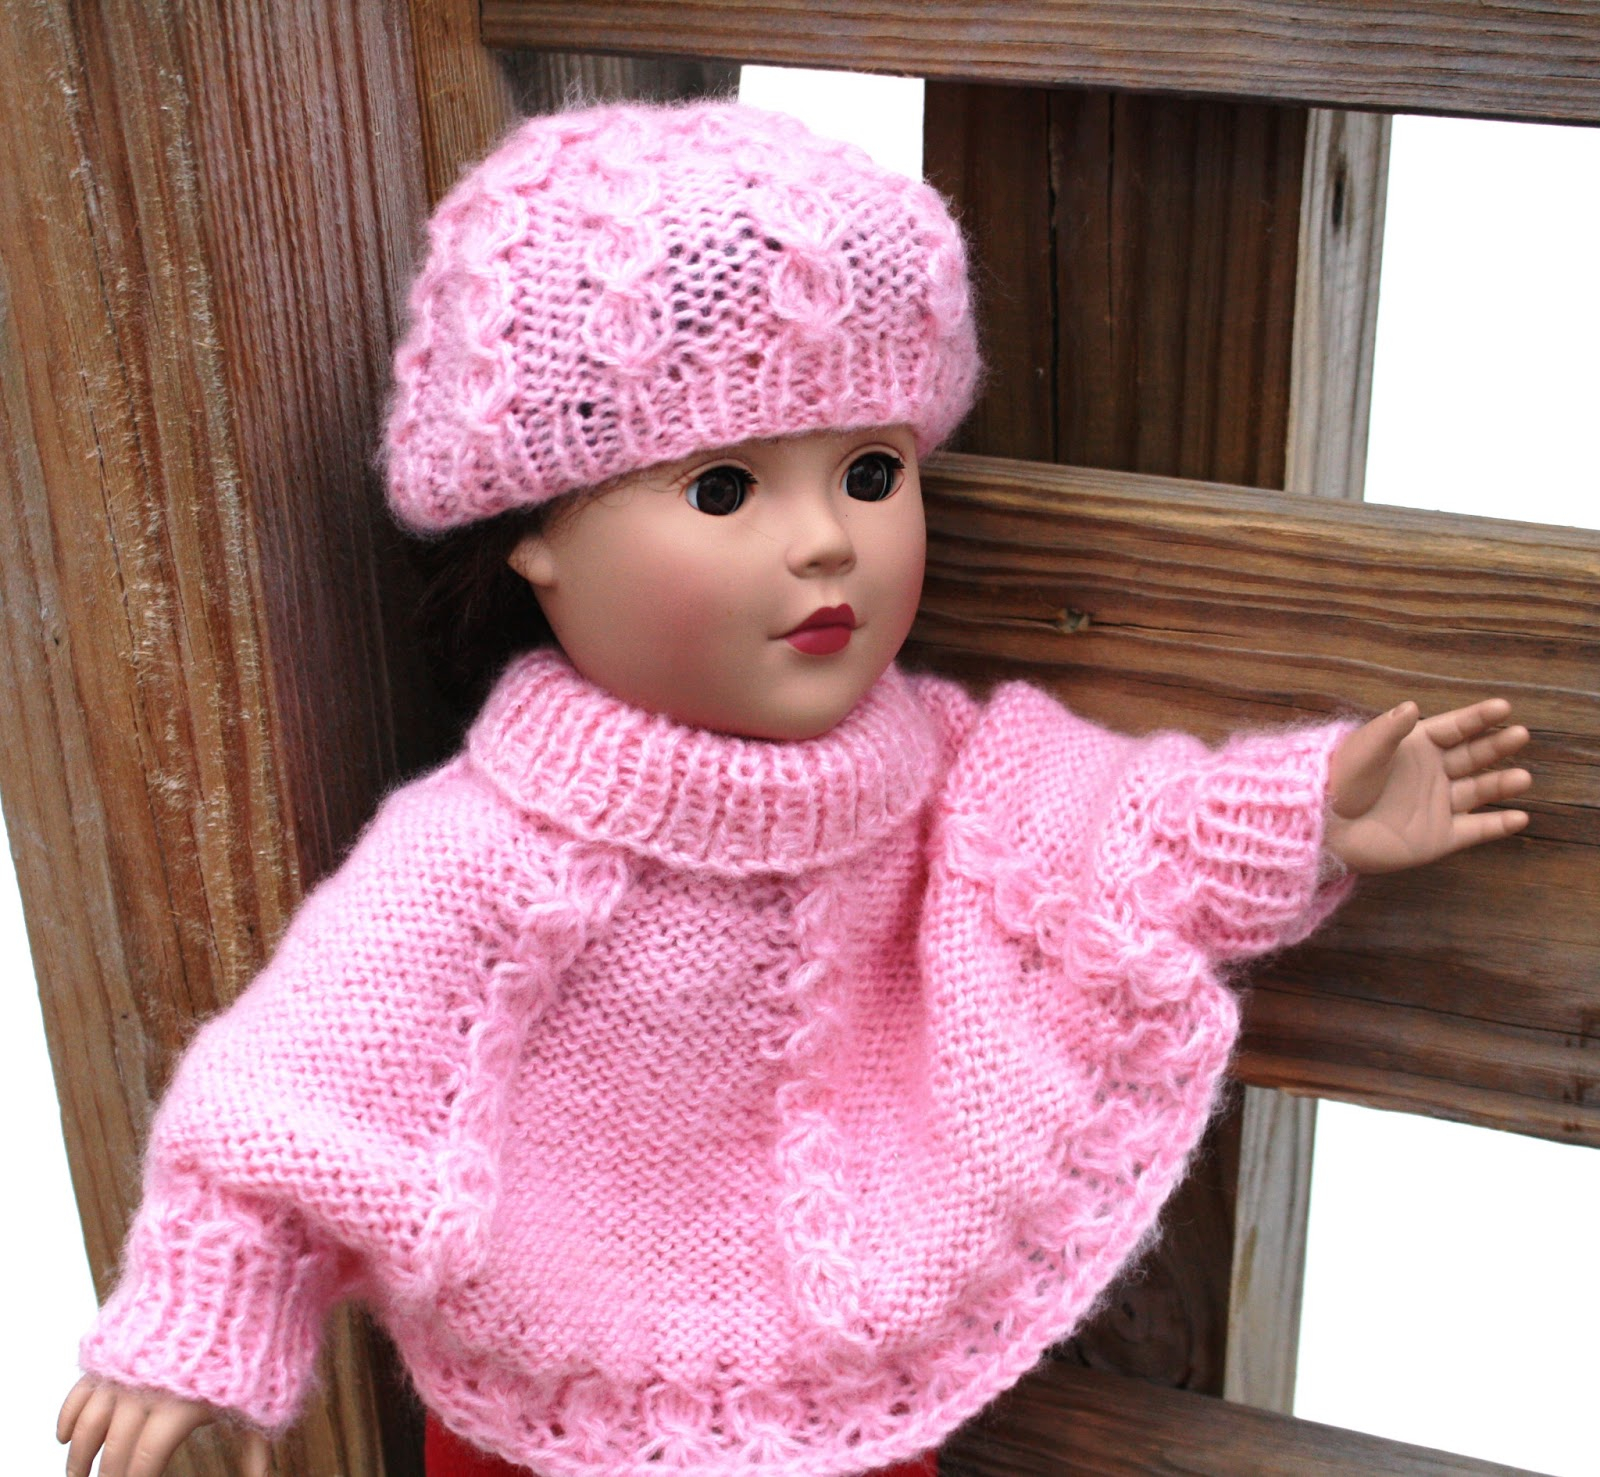 Free Knitting Patterns For Dolls Hats All Knitted Lace New Pattern Cable Sweater And Hat Set For 18 Doll